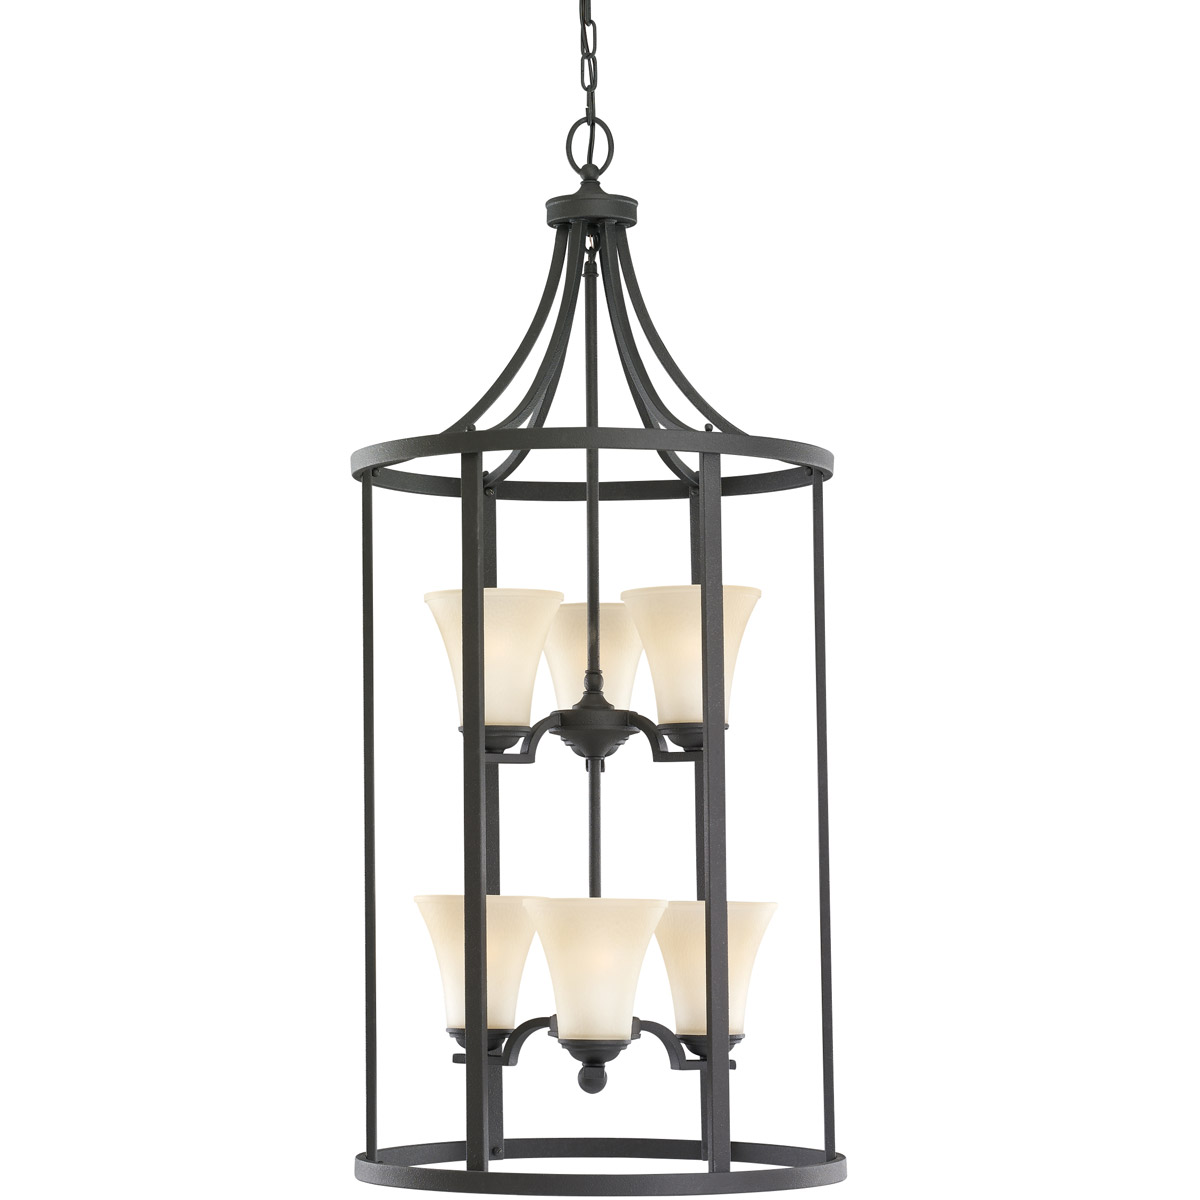 Sea Gull 51376-839 Somerton 6 Light 19 inch Blacksmith Foyer Pendant Ceiling Light in Cafe Tint Glass, Standard photo